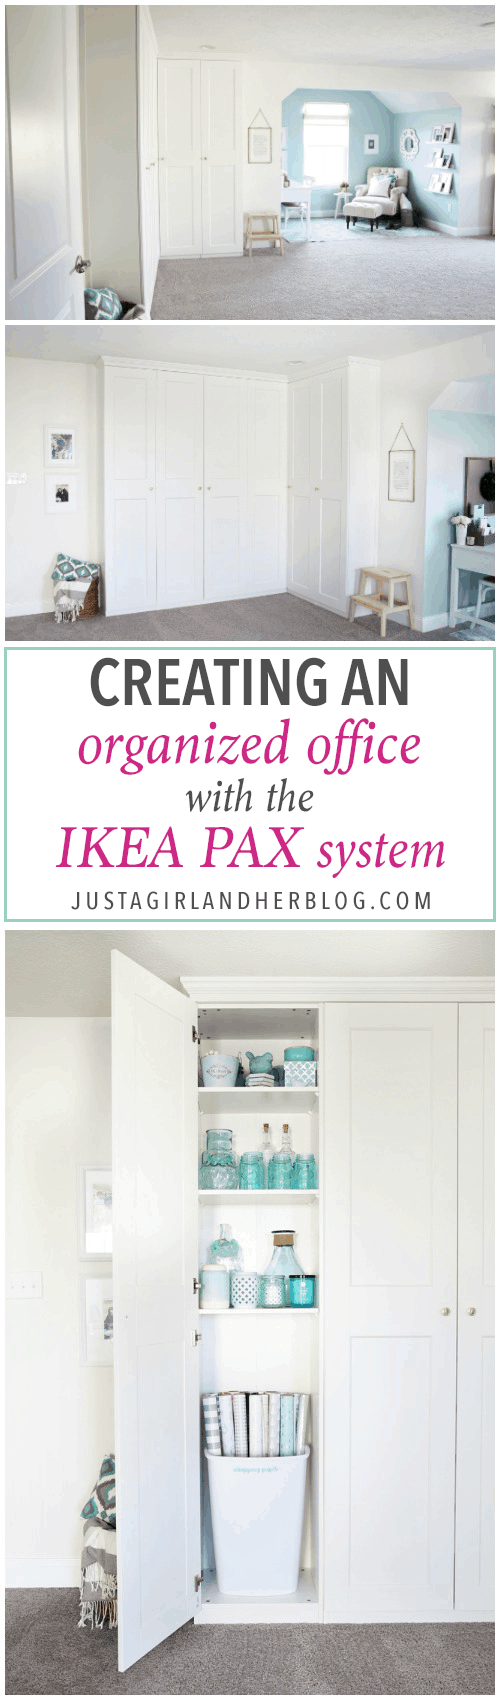 Ikea System Creating An Organized Office With The Ikea Pax System Just A